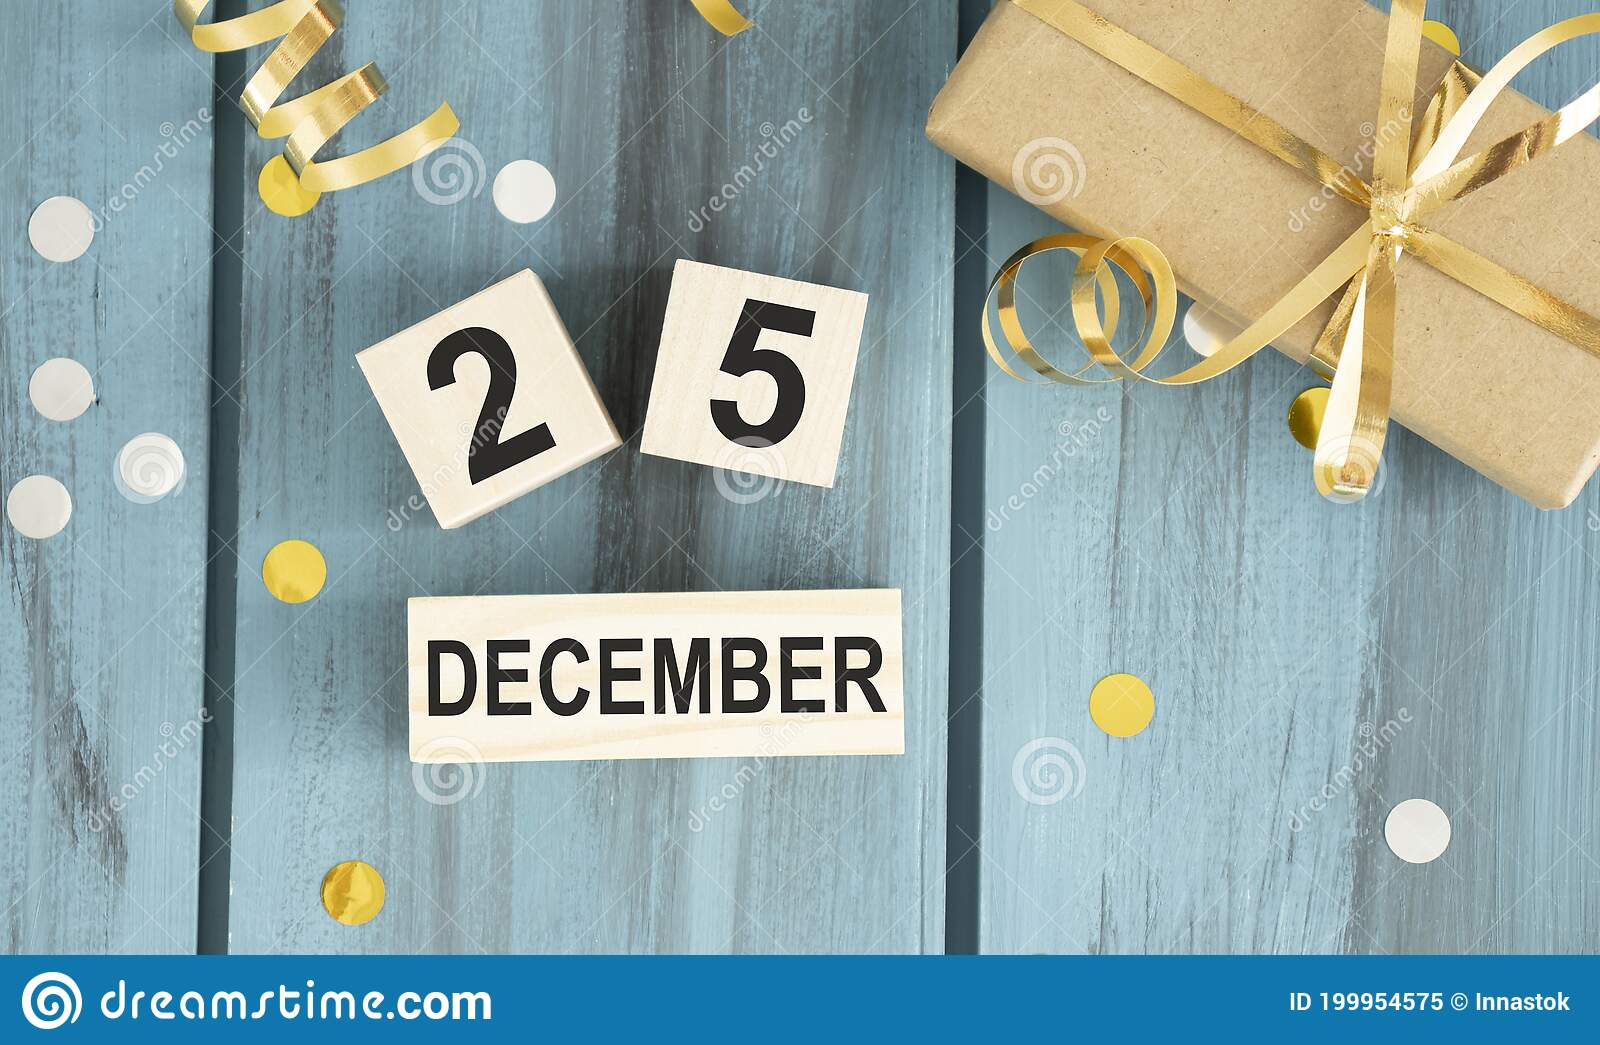 Wood Calendar Blocks With The Date December 25th To Mark Christmas Day With Bokeh Lights Black And White Buffalo Check Stock Image Image Of Wooden Rustic 199954575